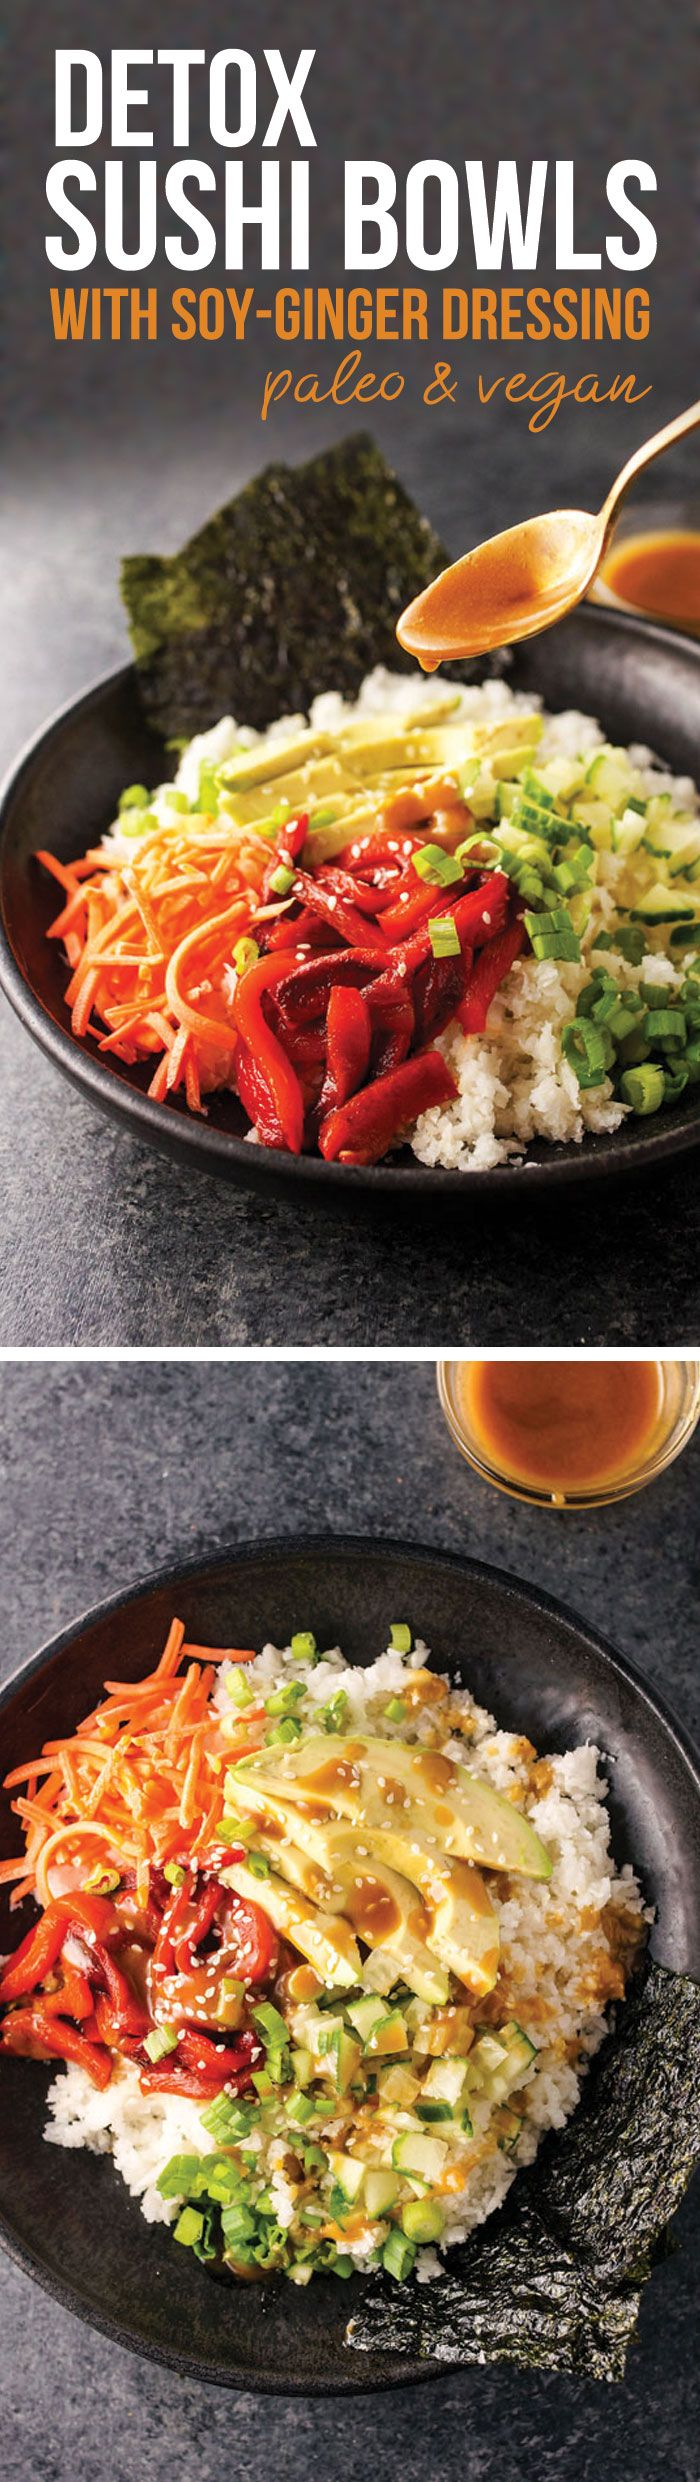 "These Detox ""Sushi"" Bowls are made with jicama rice for a grain-free bowl, and the soy-ginger dressing tastes amazing over the top! A great healthy alternative to salads this summer."